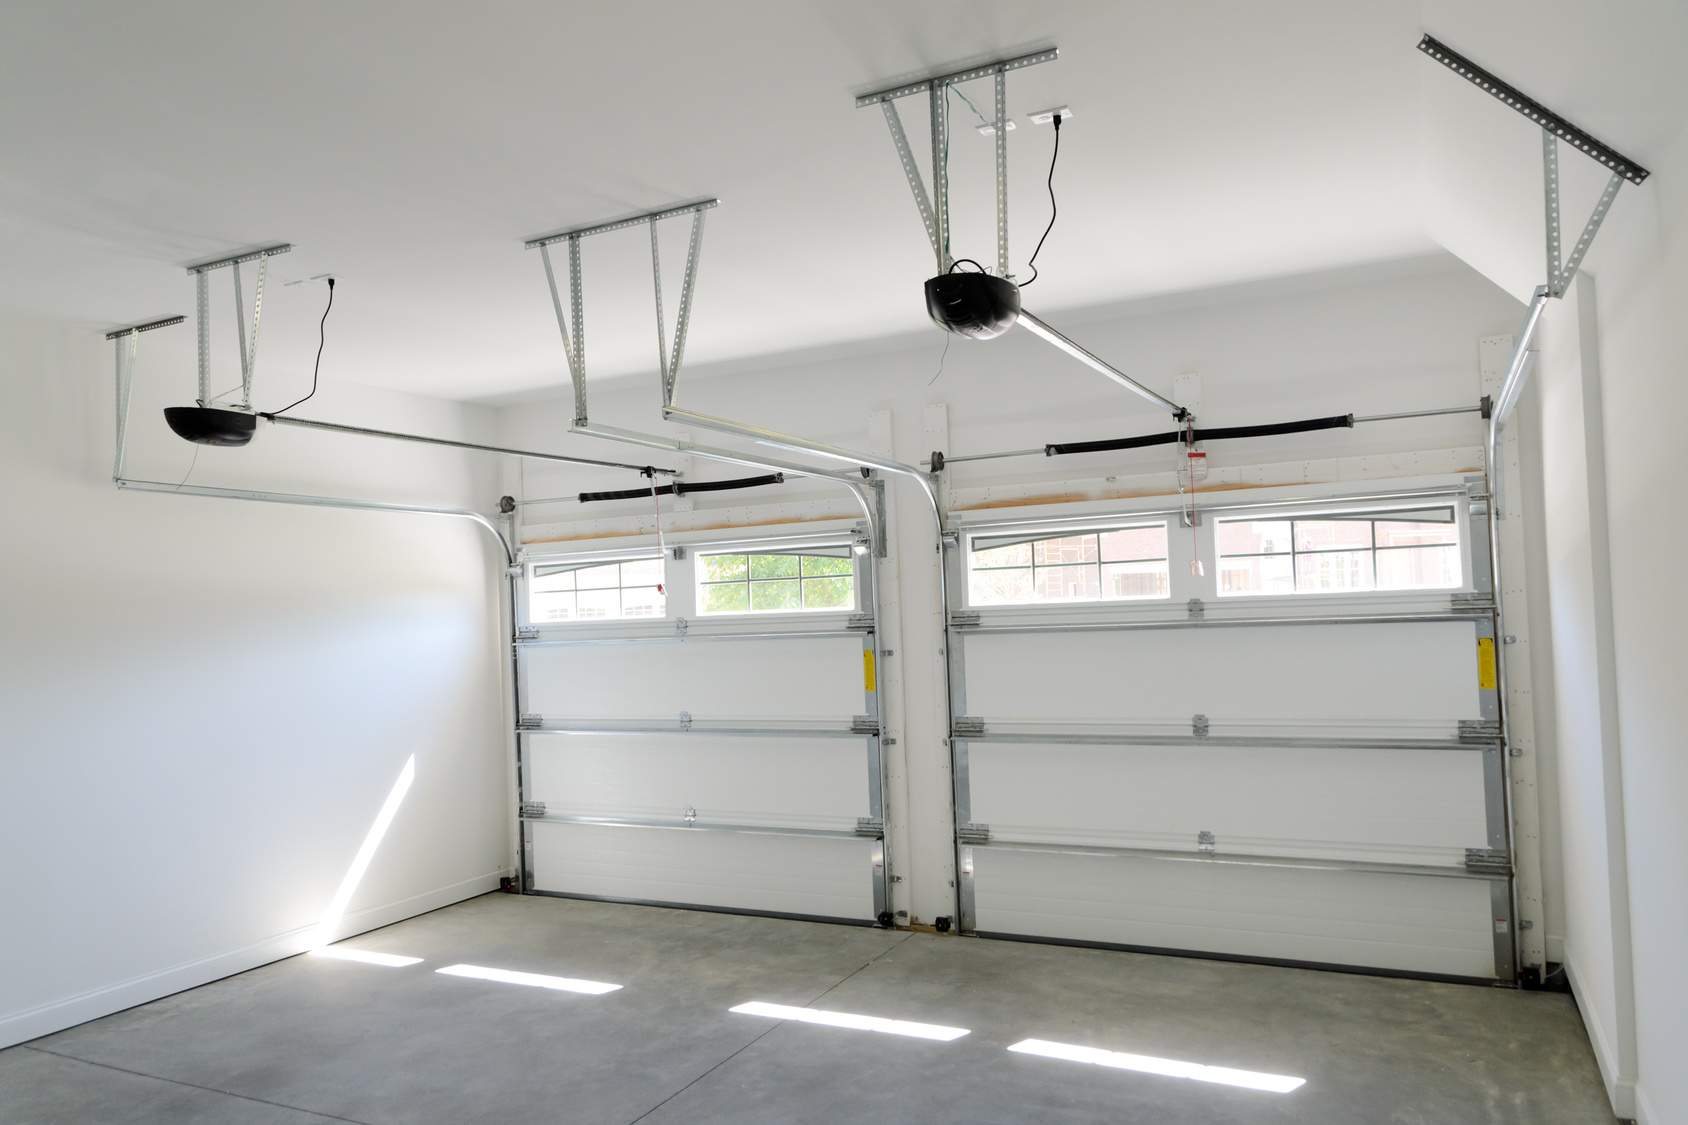 Interior View Of 2 Car Residential Garage With Door Openers